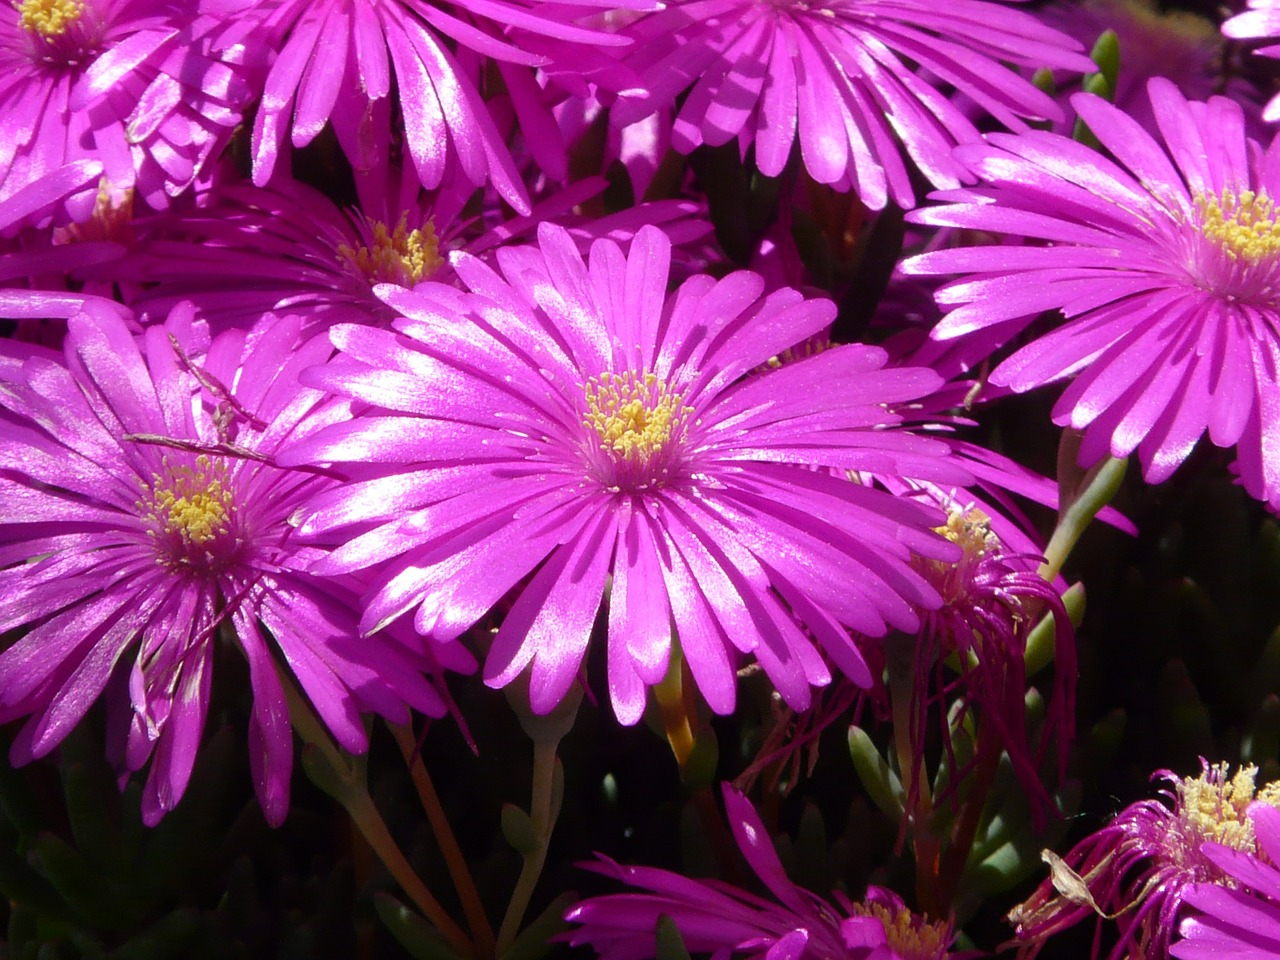 red mittagsblume ice plant flower free photo